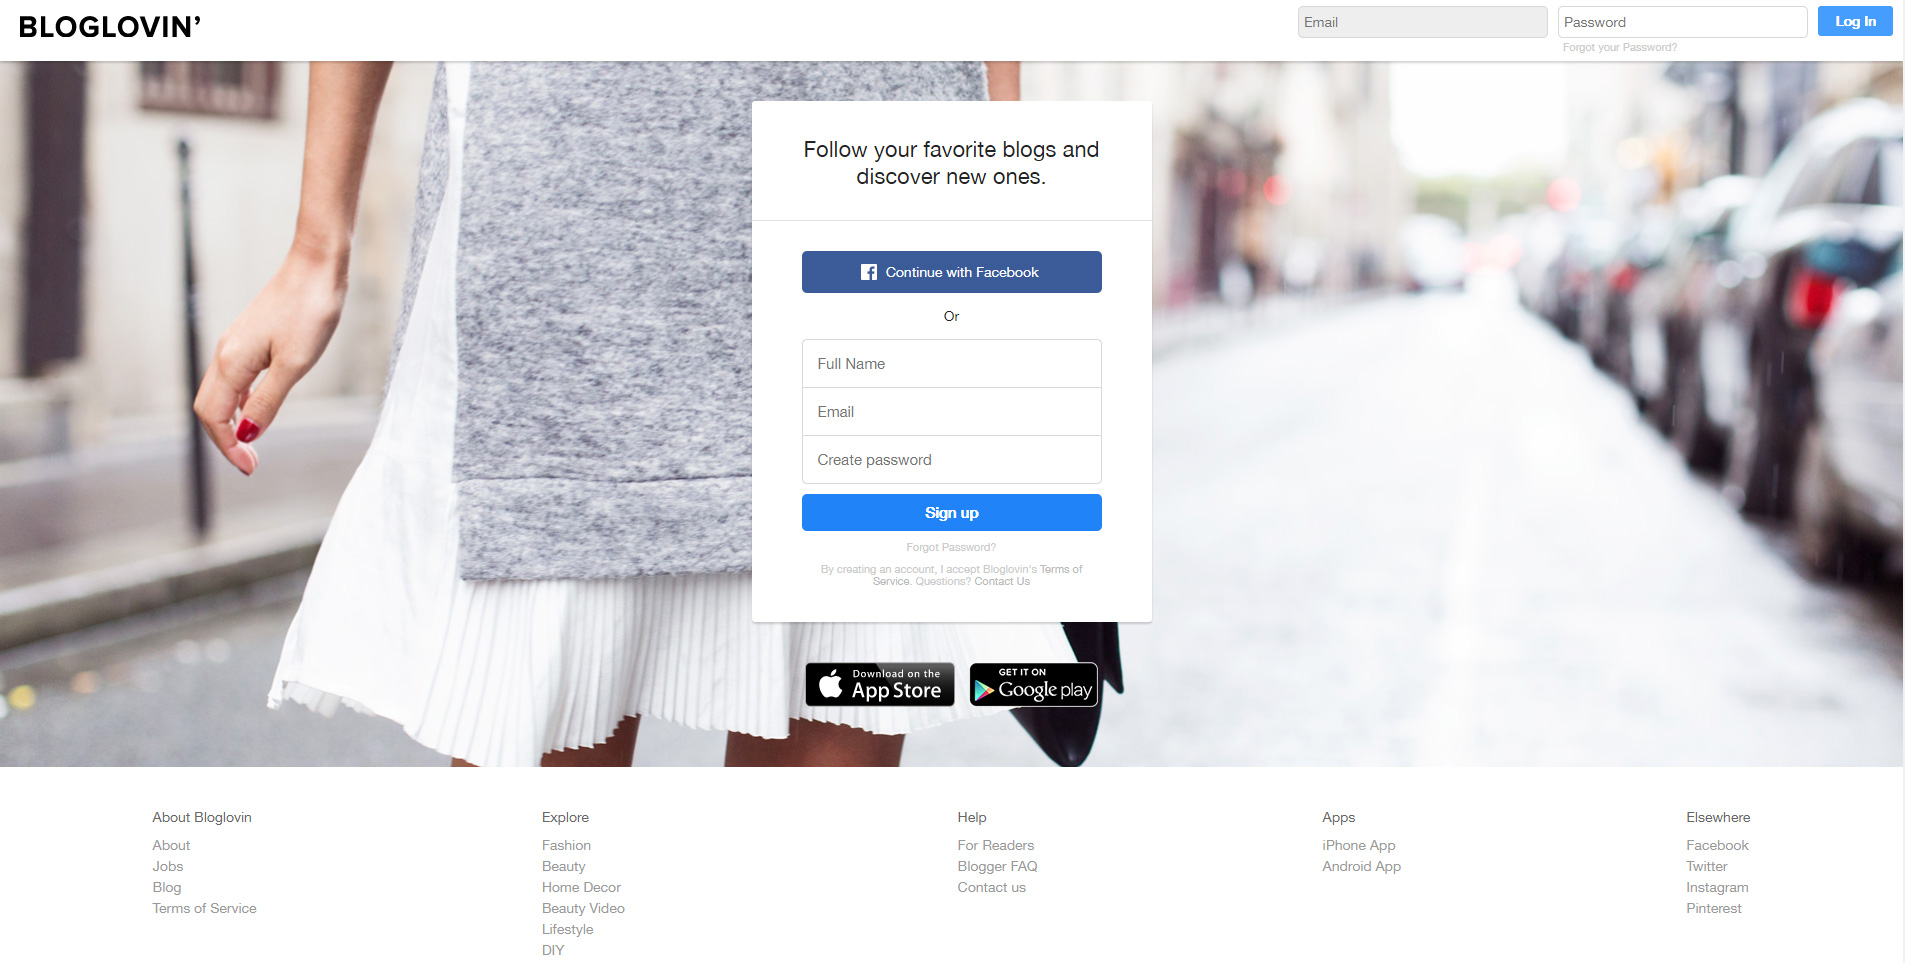 Create an account on Bloglovin